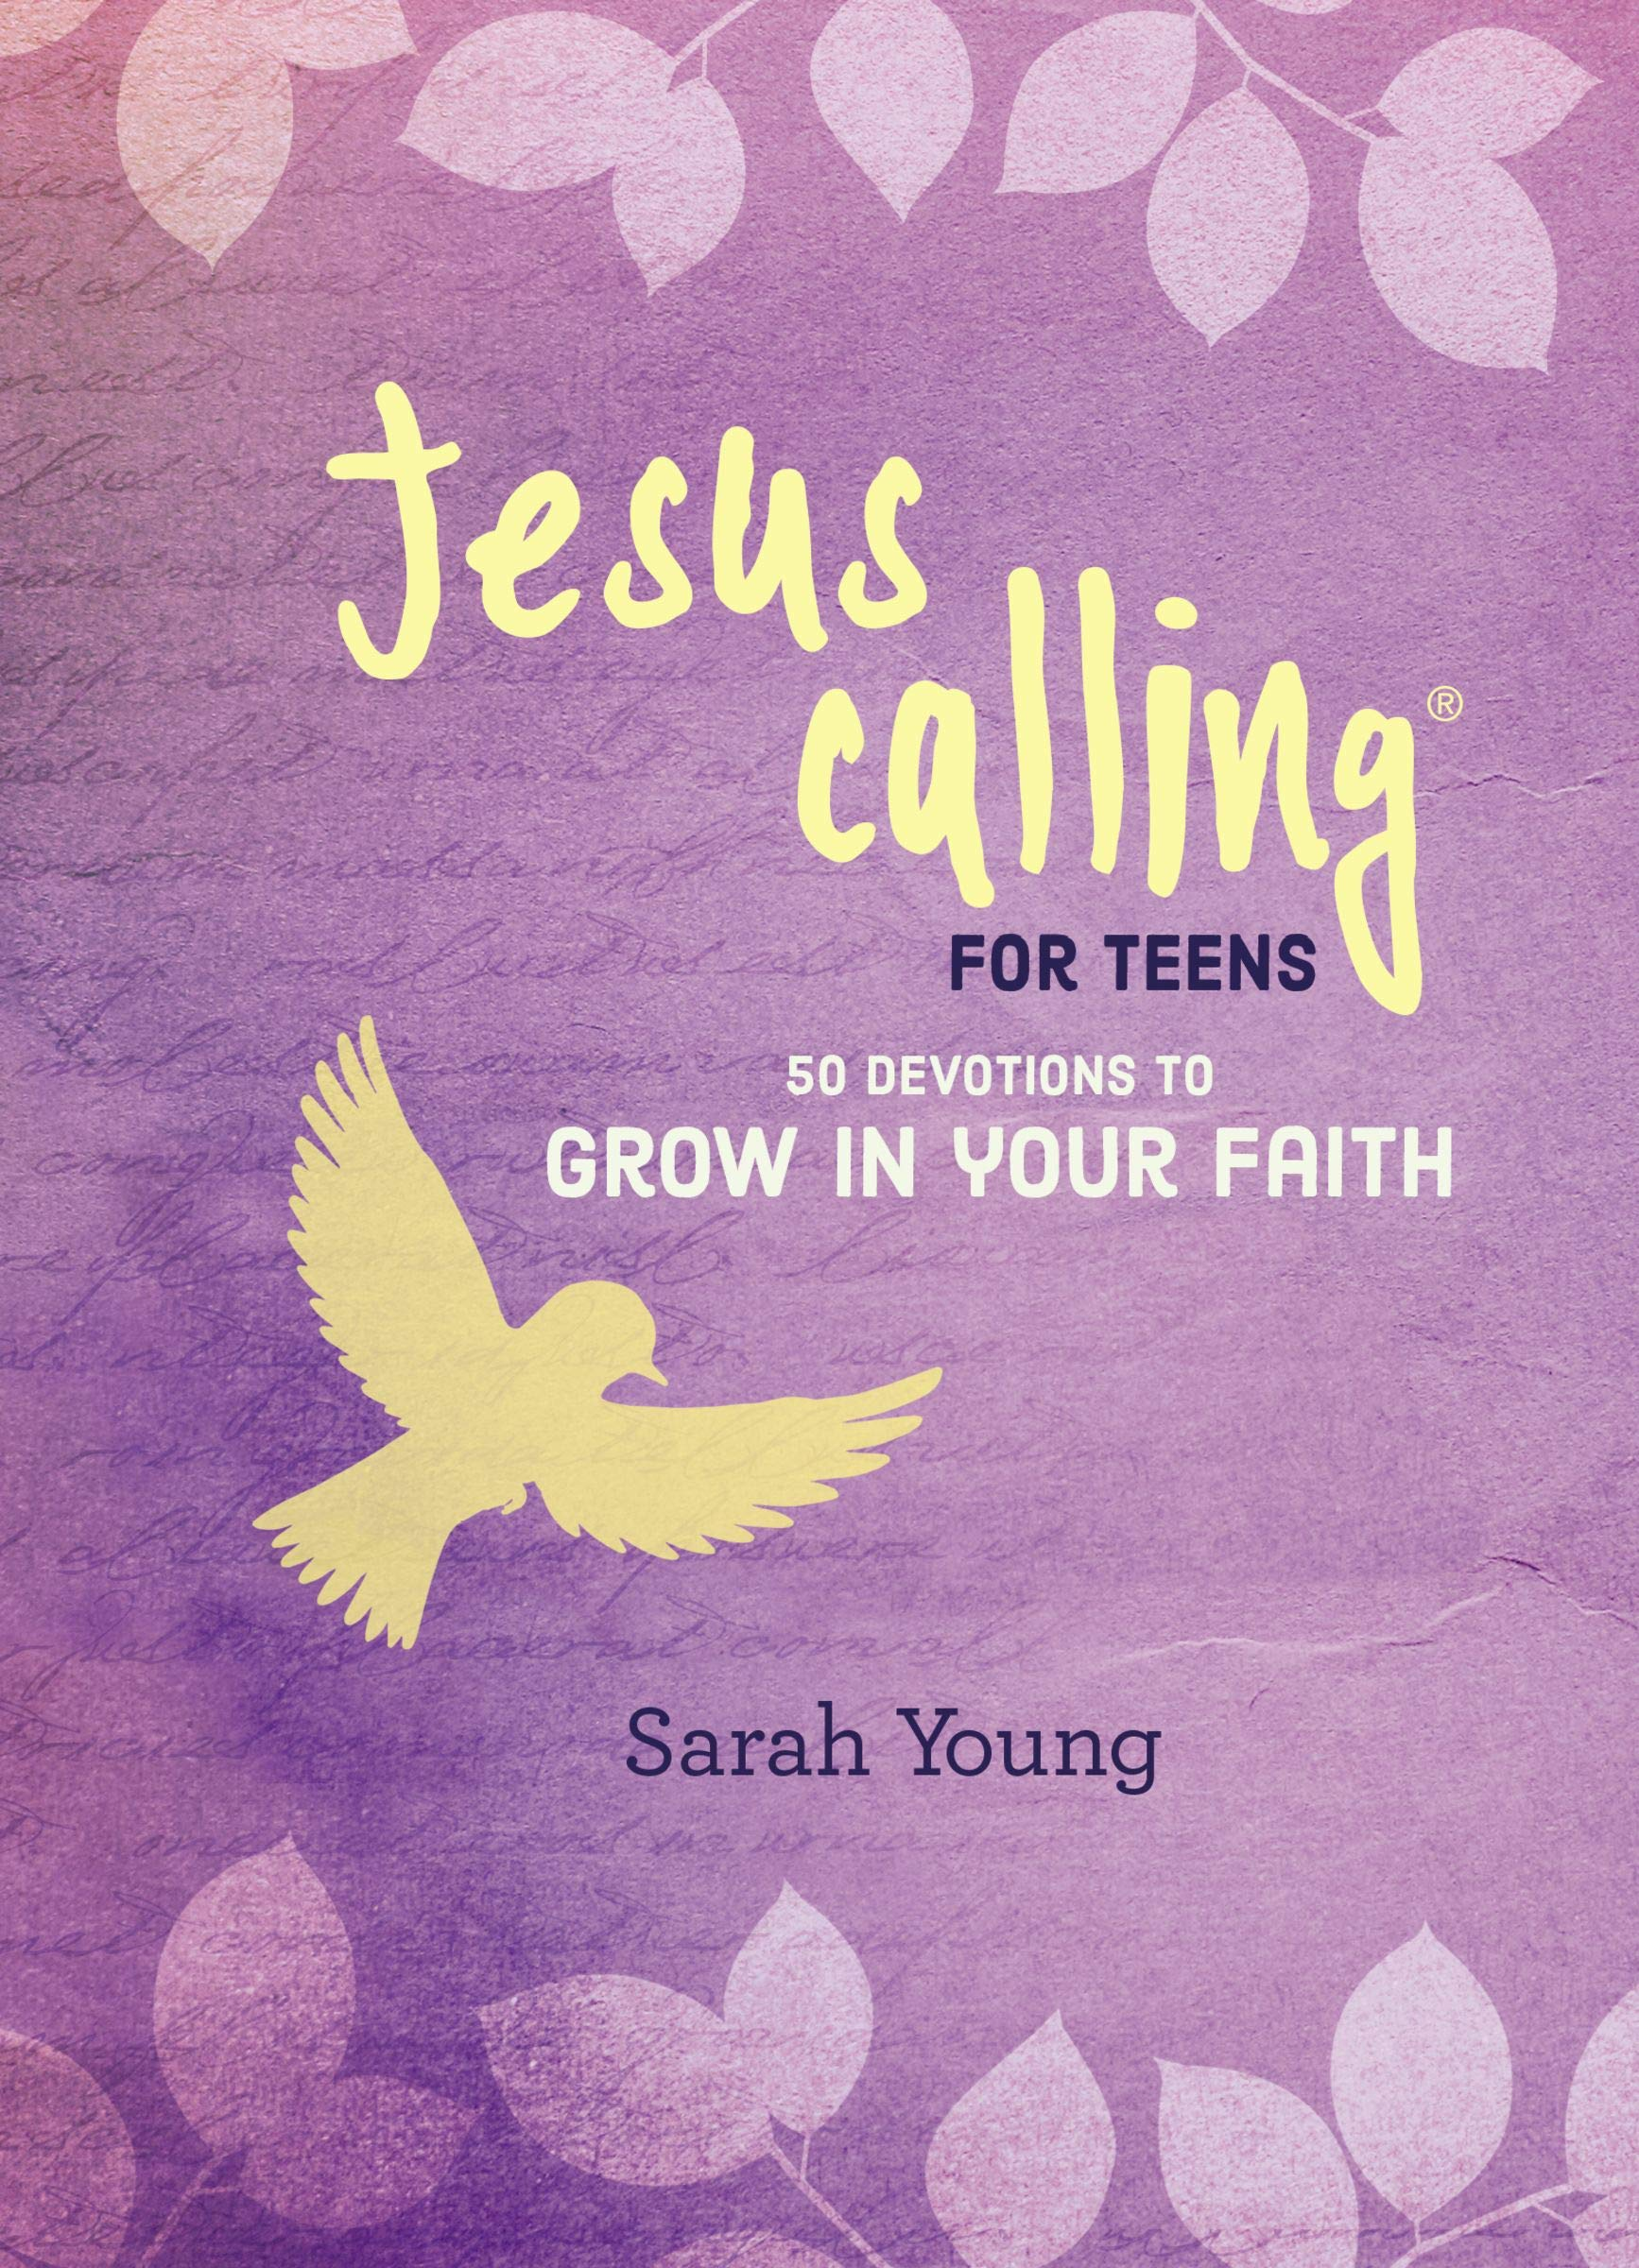 Jesus Calling: 50 Devotions to Grow in Your Faith: Sarah Young:  9781400324392: Amazon.com: Books